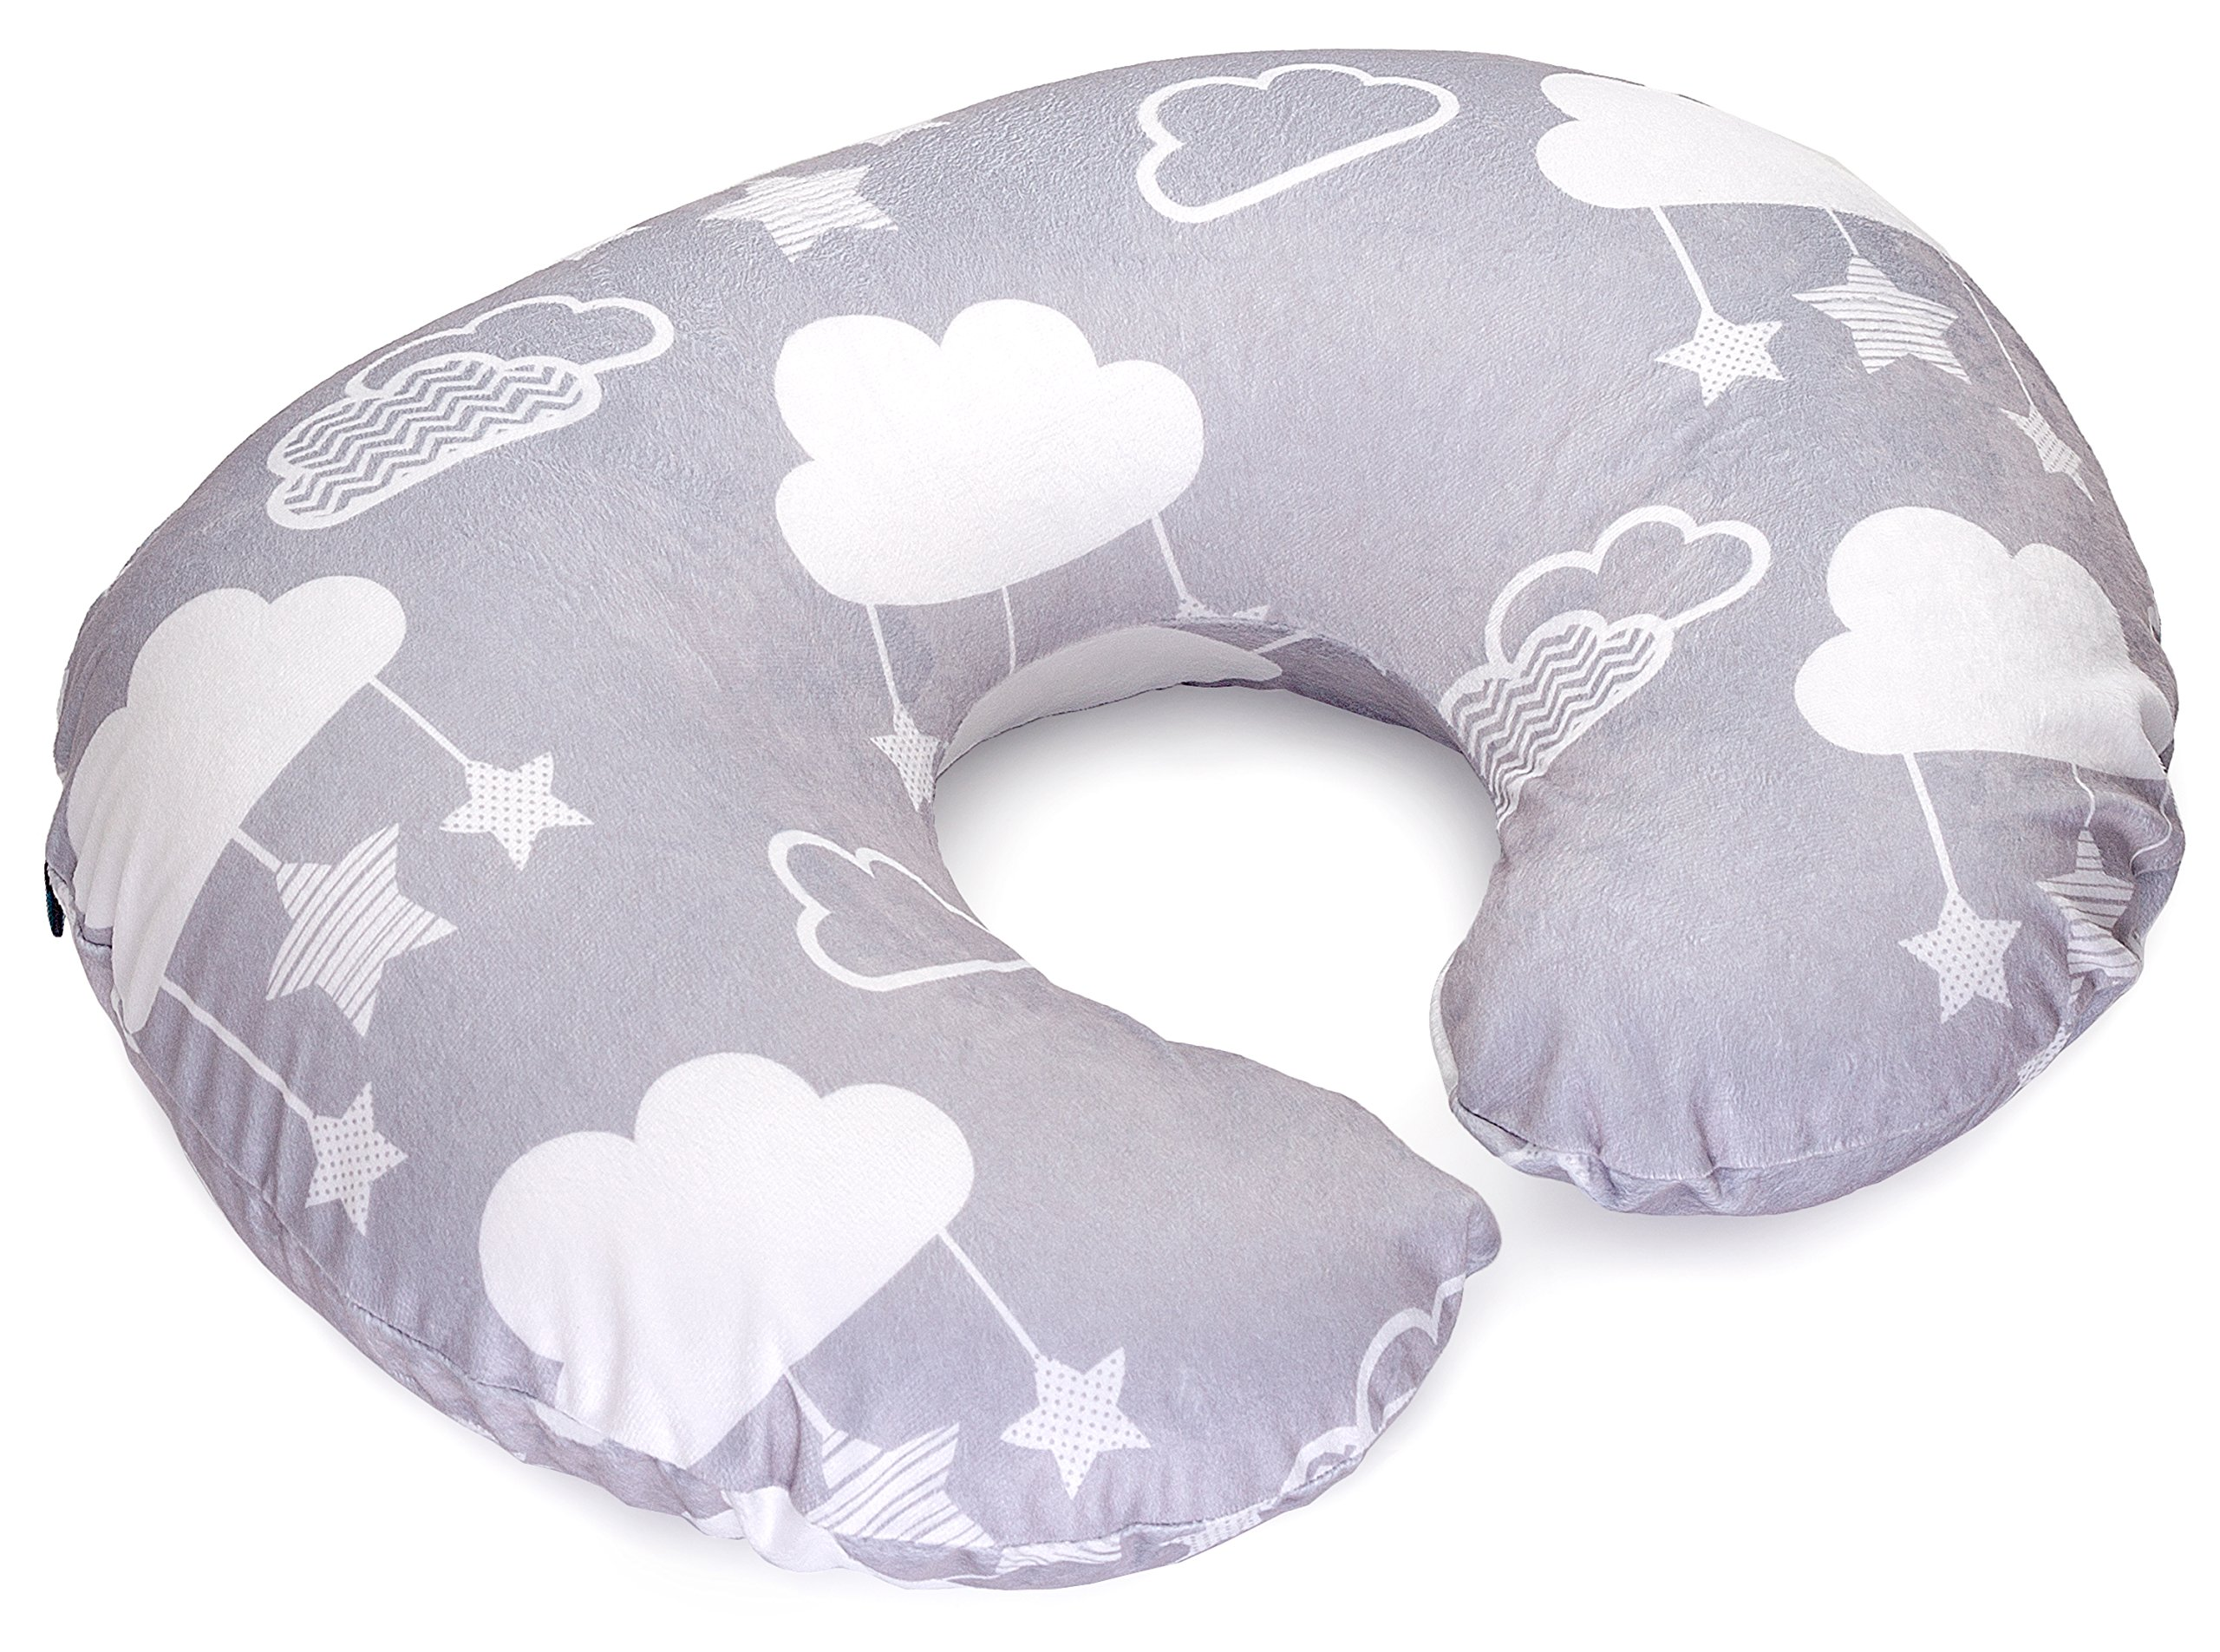 Childlike Behavior Minky Nursing Pillow Cover - Perfect Slipcover for Breastfeeding Moms | Soft Fabric Fits Snug On Infant Nursing Pillows to Aid Mothers While Breast Feeding | Stars and Clouds